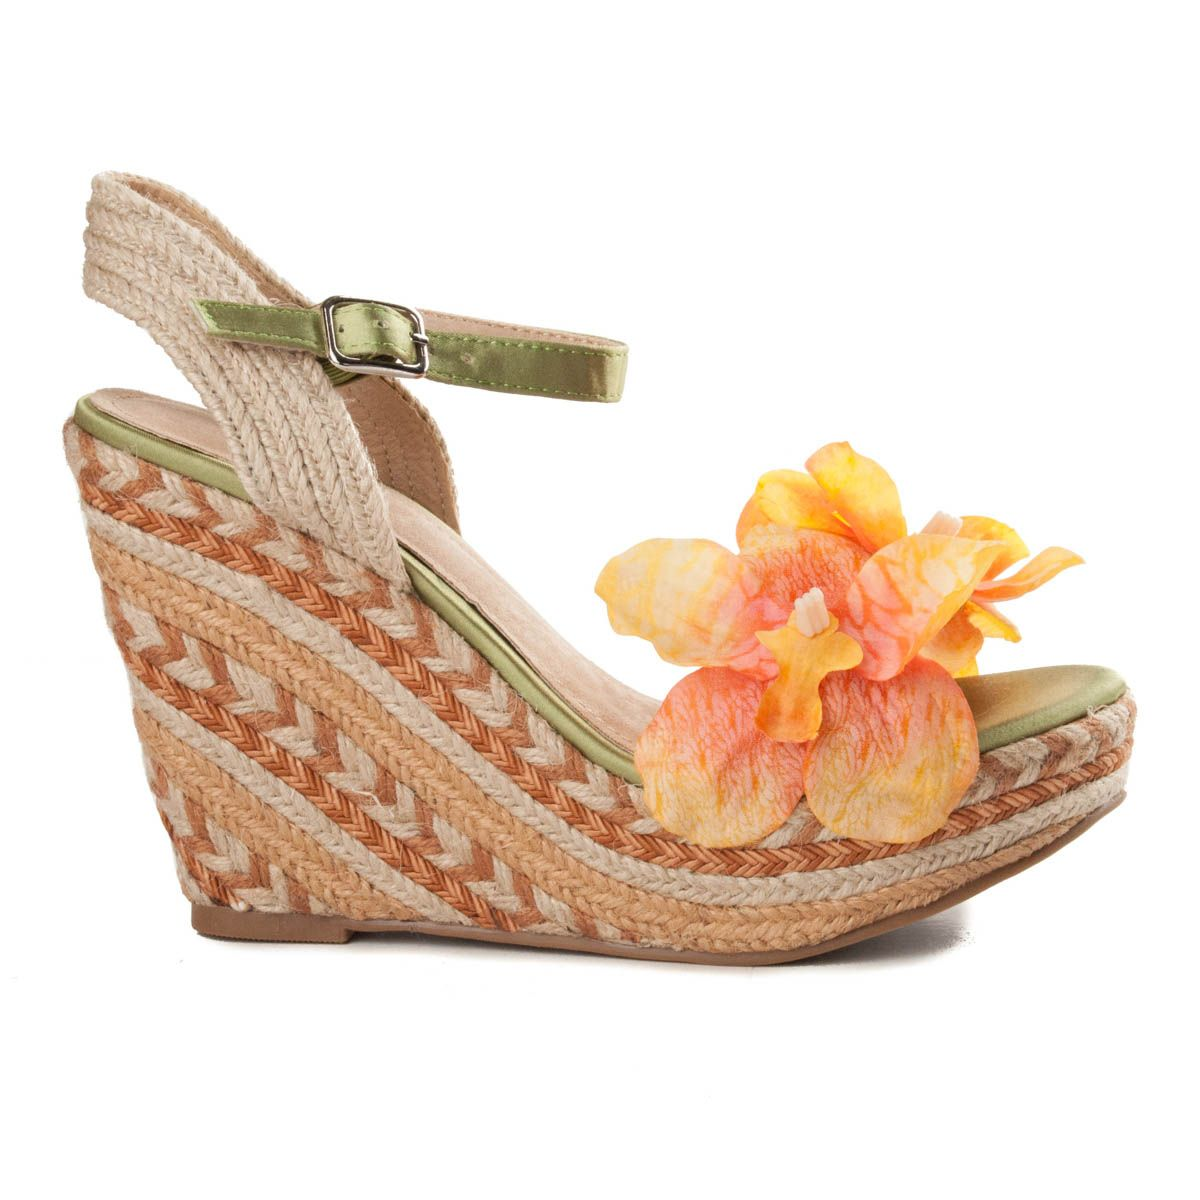 Maria Graor Ankle Strap Wedge Espadrille in Pink